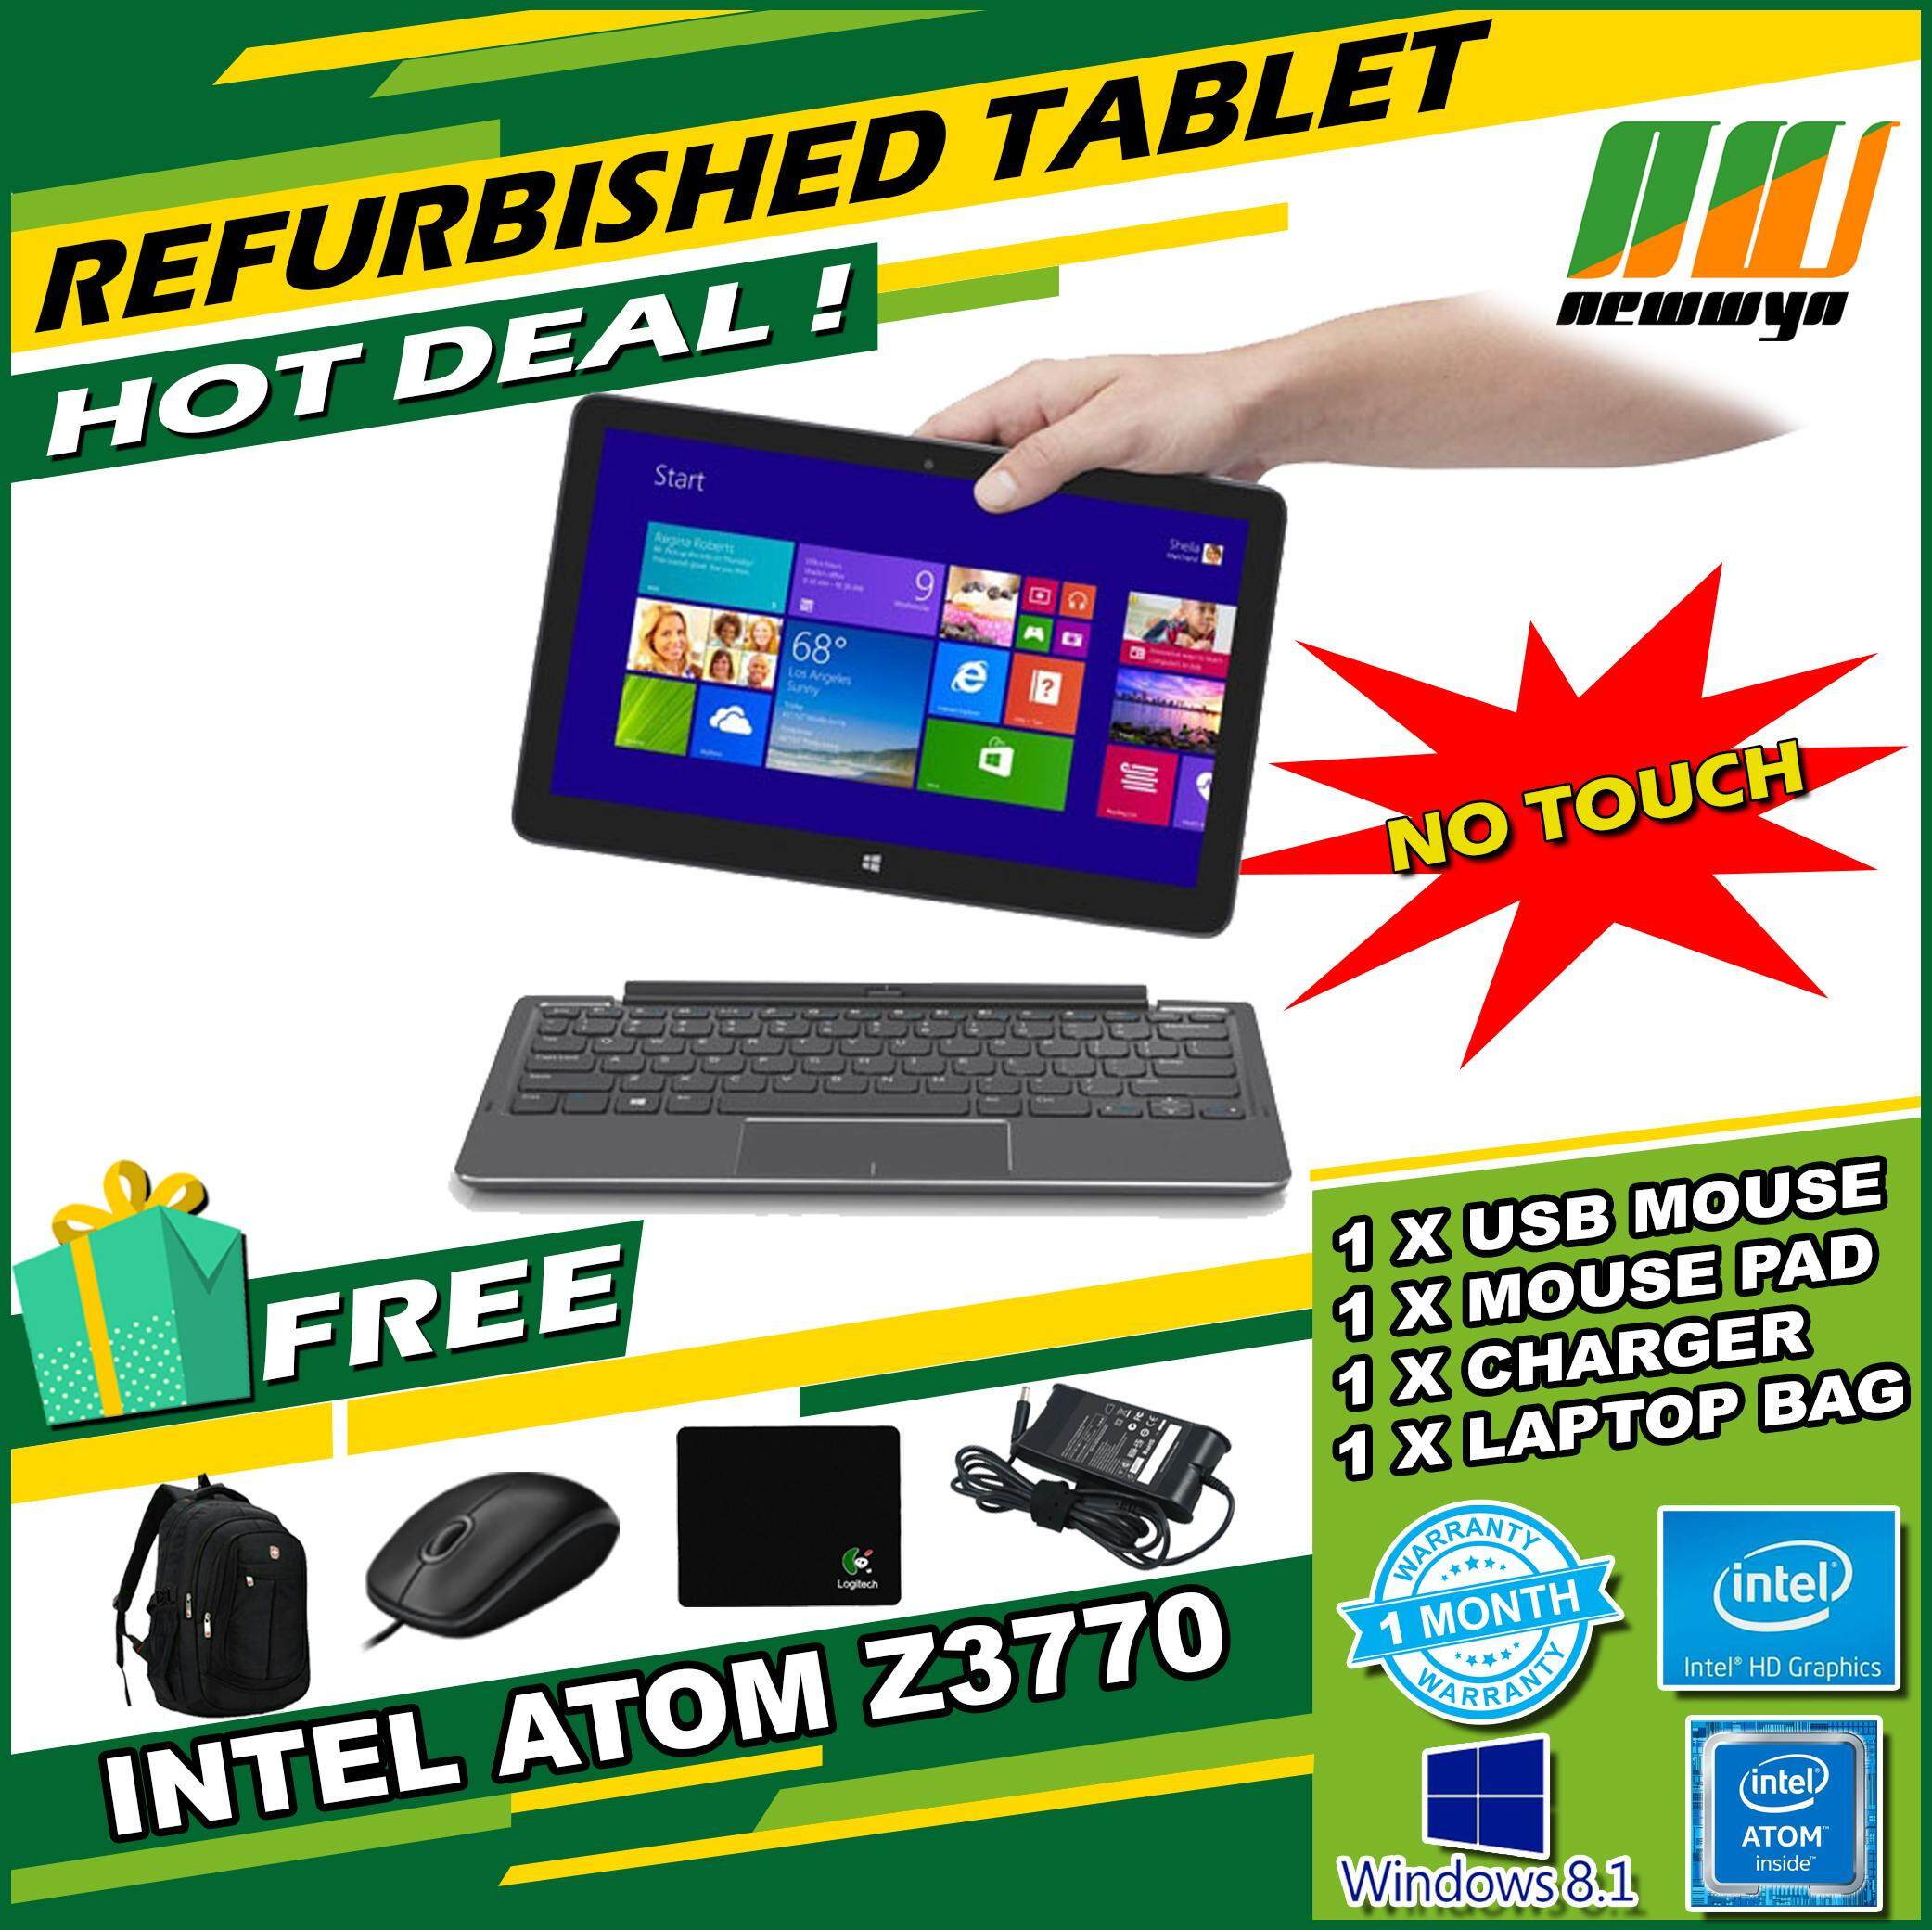 Refurbished Non-Touch Dell Venue 11 Pro 5130 Tablet (10.8 , Intel Atom, 2GB RAM, 64GB MMC, W8) - With Keyboard Malaysia